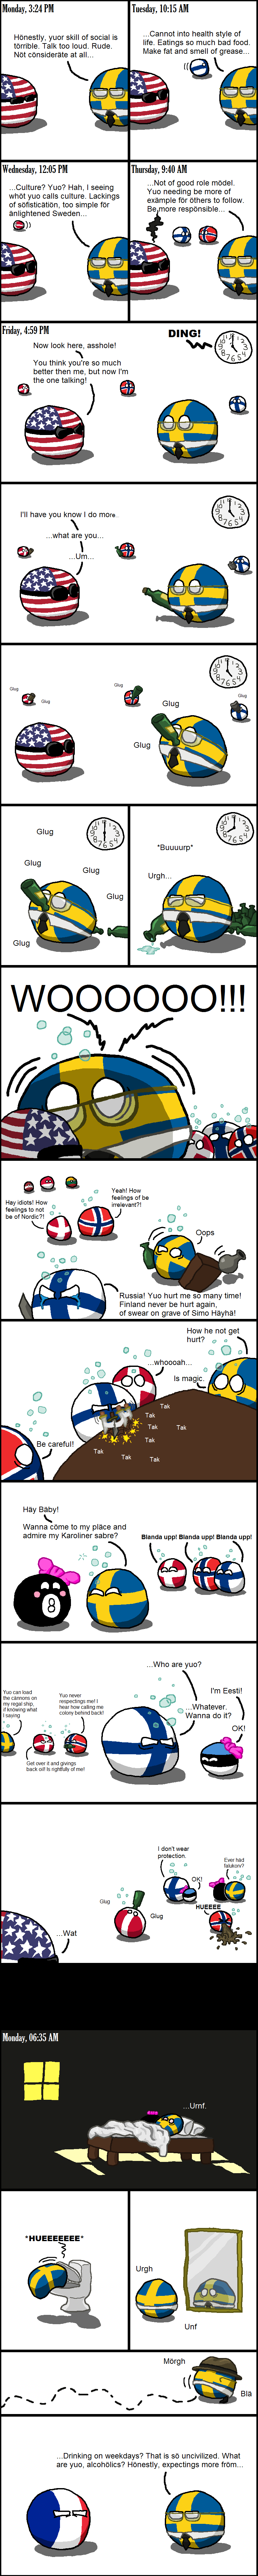 the Nordic model. Not made by me, found on the polandball subreddit.. Monday, 321 M Honestly, yuor skill of social is terrible. Talk too loud. Rude. Not conside